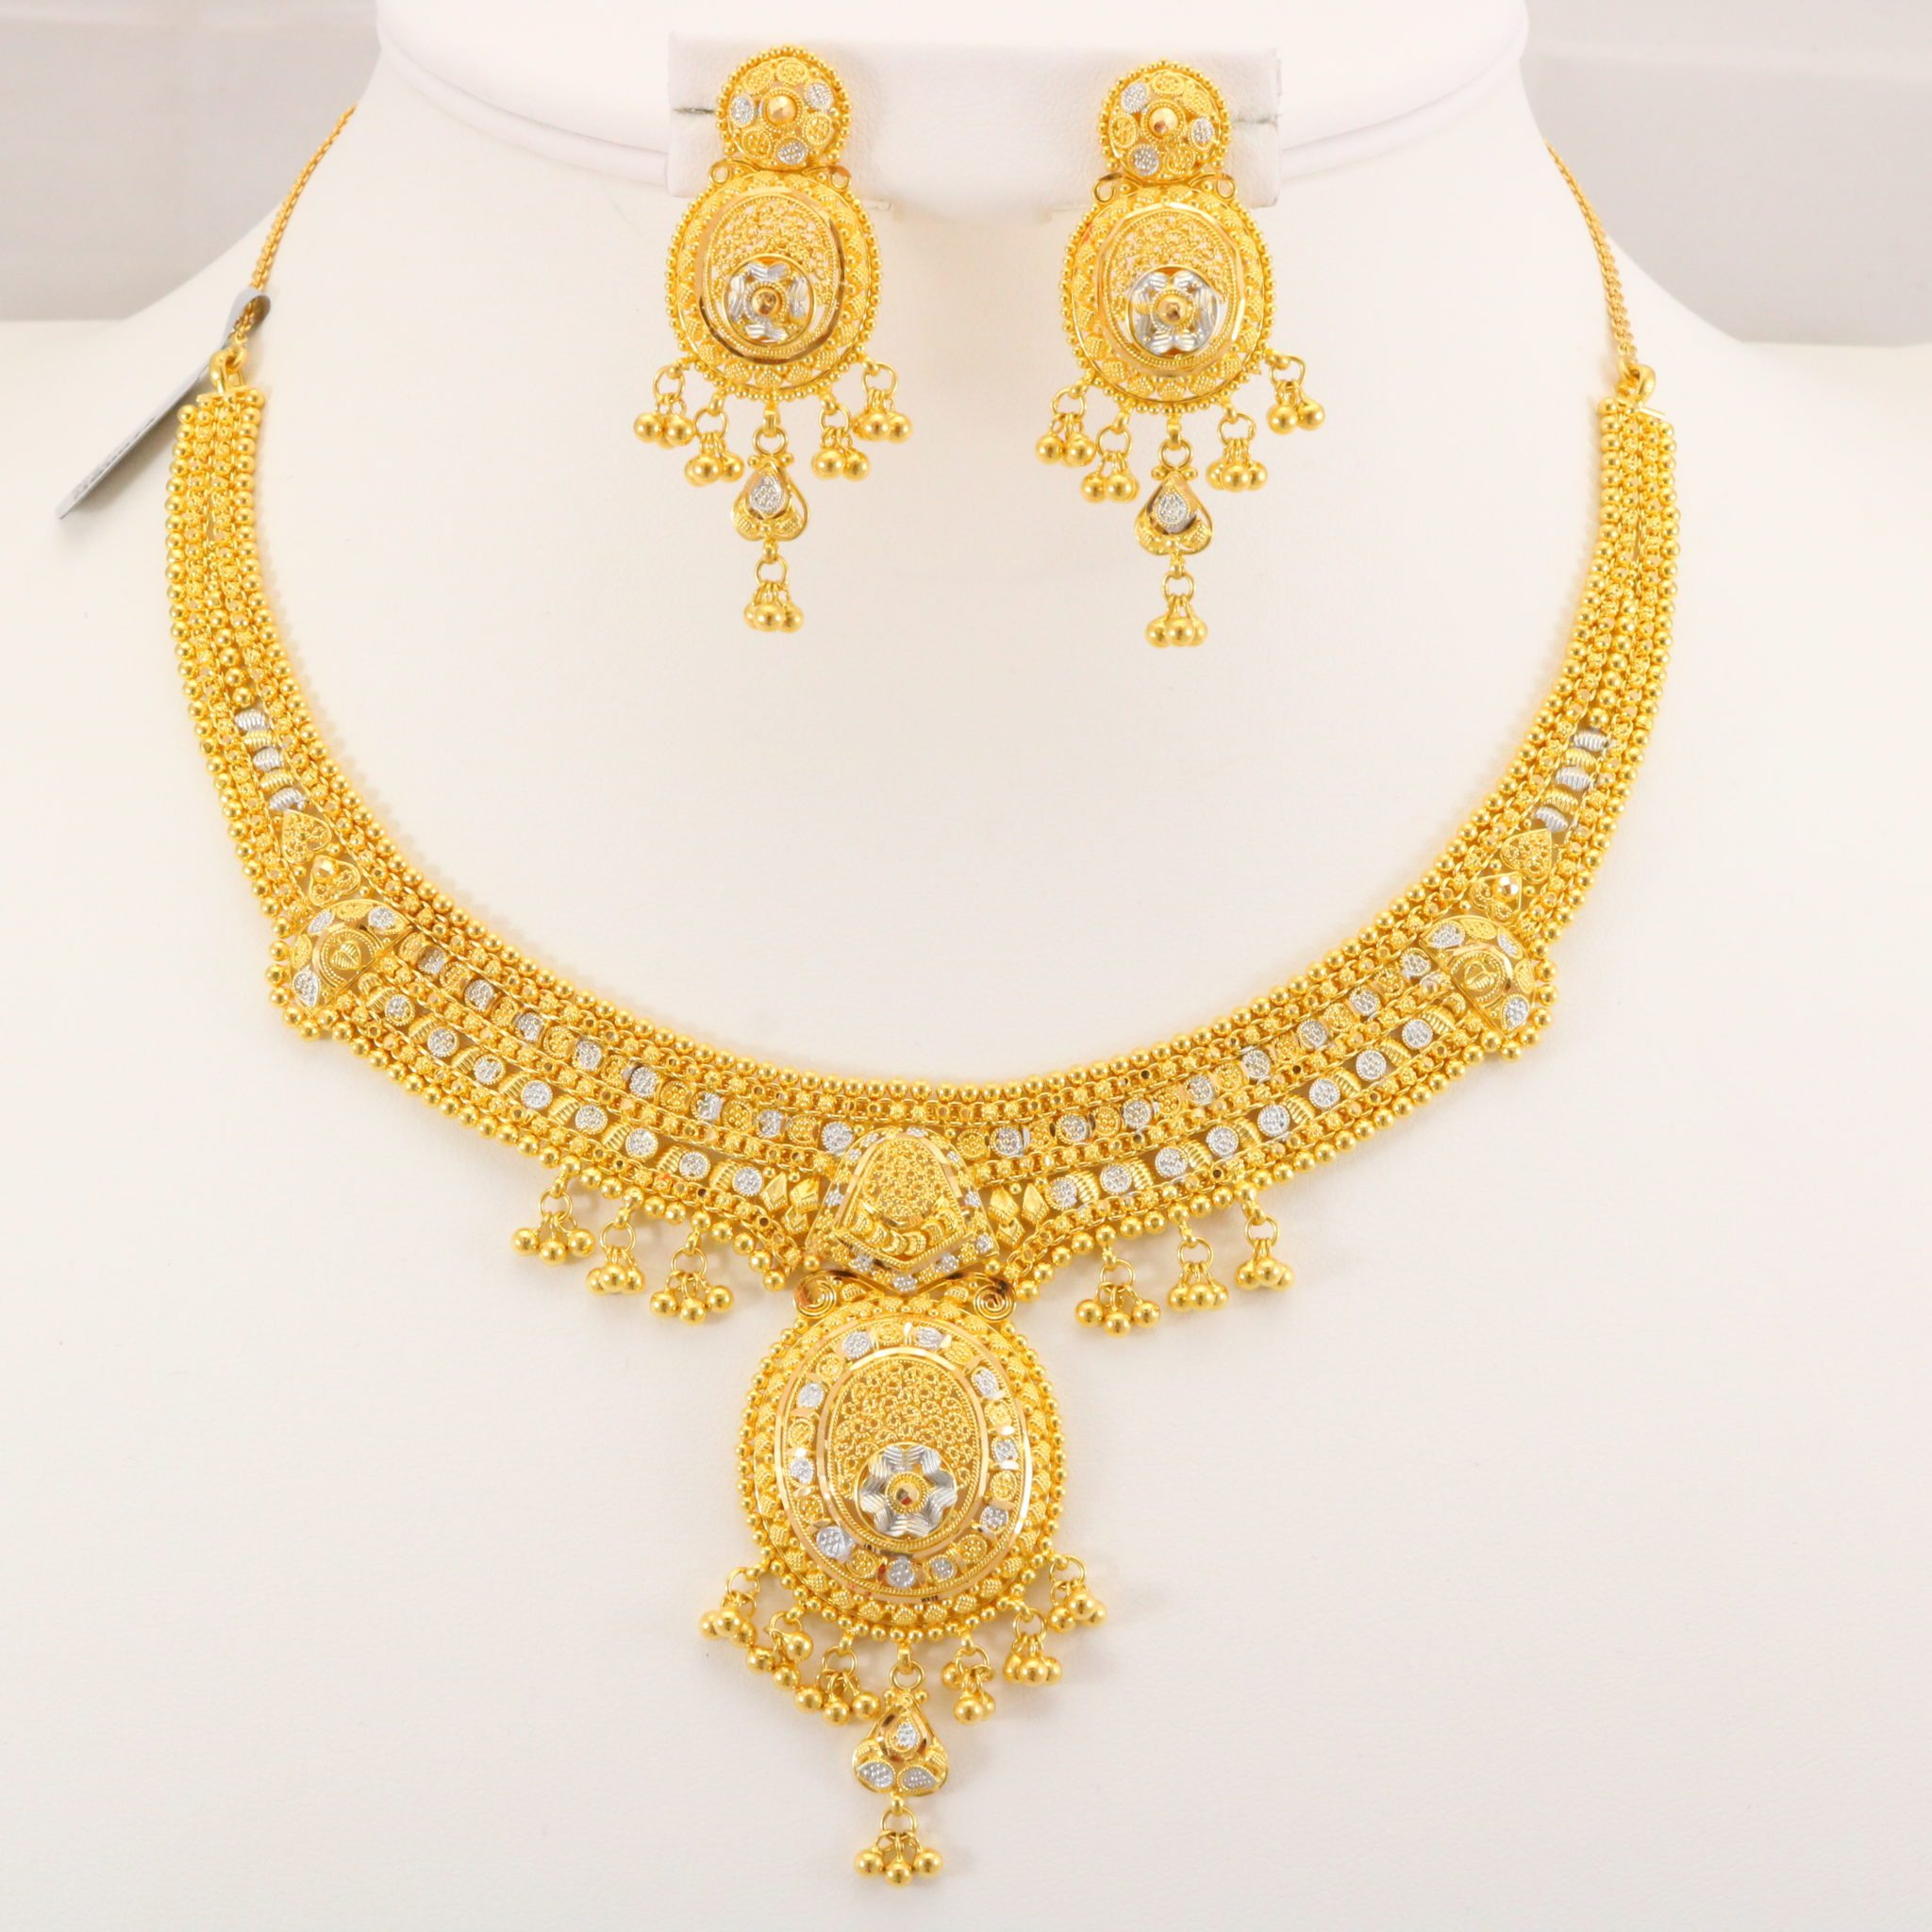 22 Carat Indian Gold Necklace Set 46 6 Grams Gold Forever